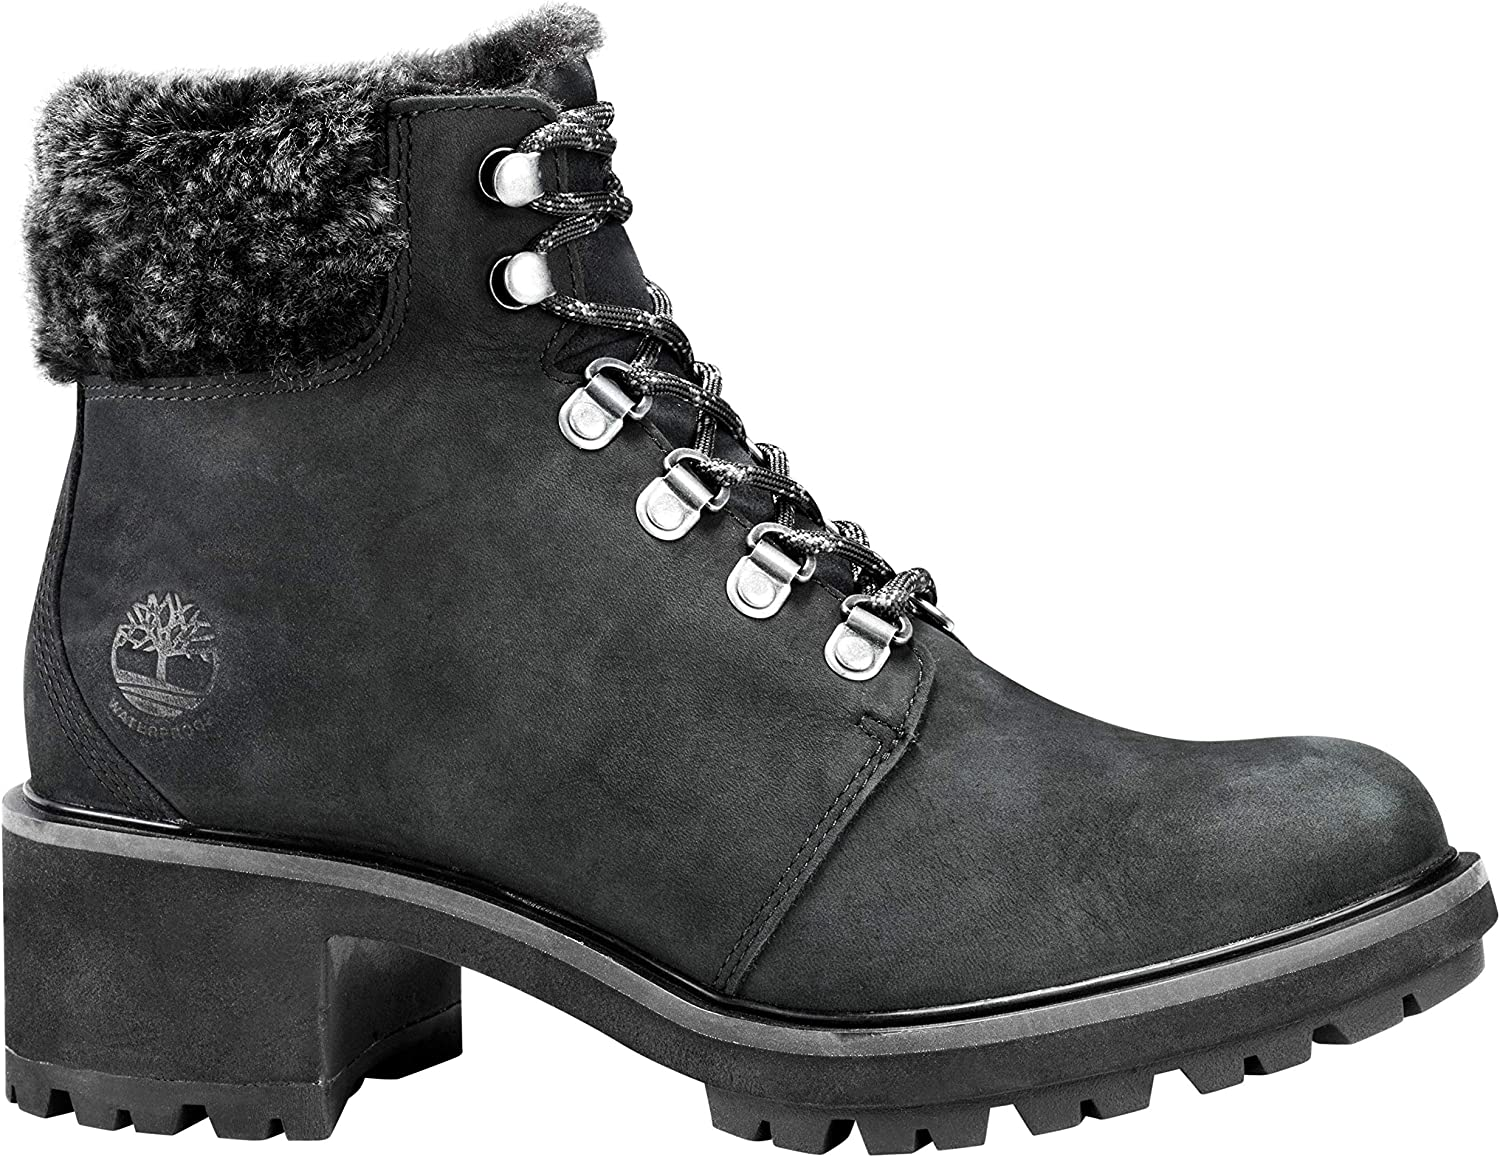 Timberland Women s Shoes Kinsley Nubuck Closed Toe Ankle Fashion Boots